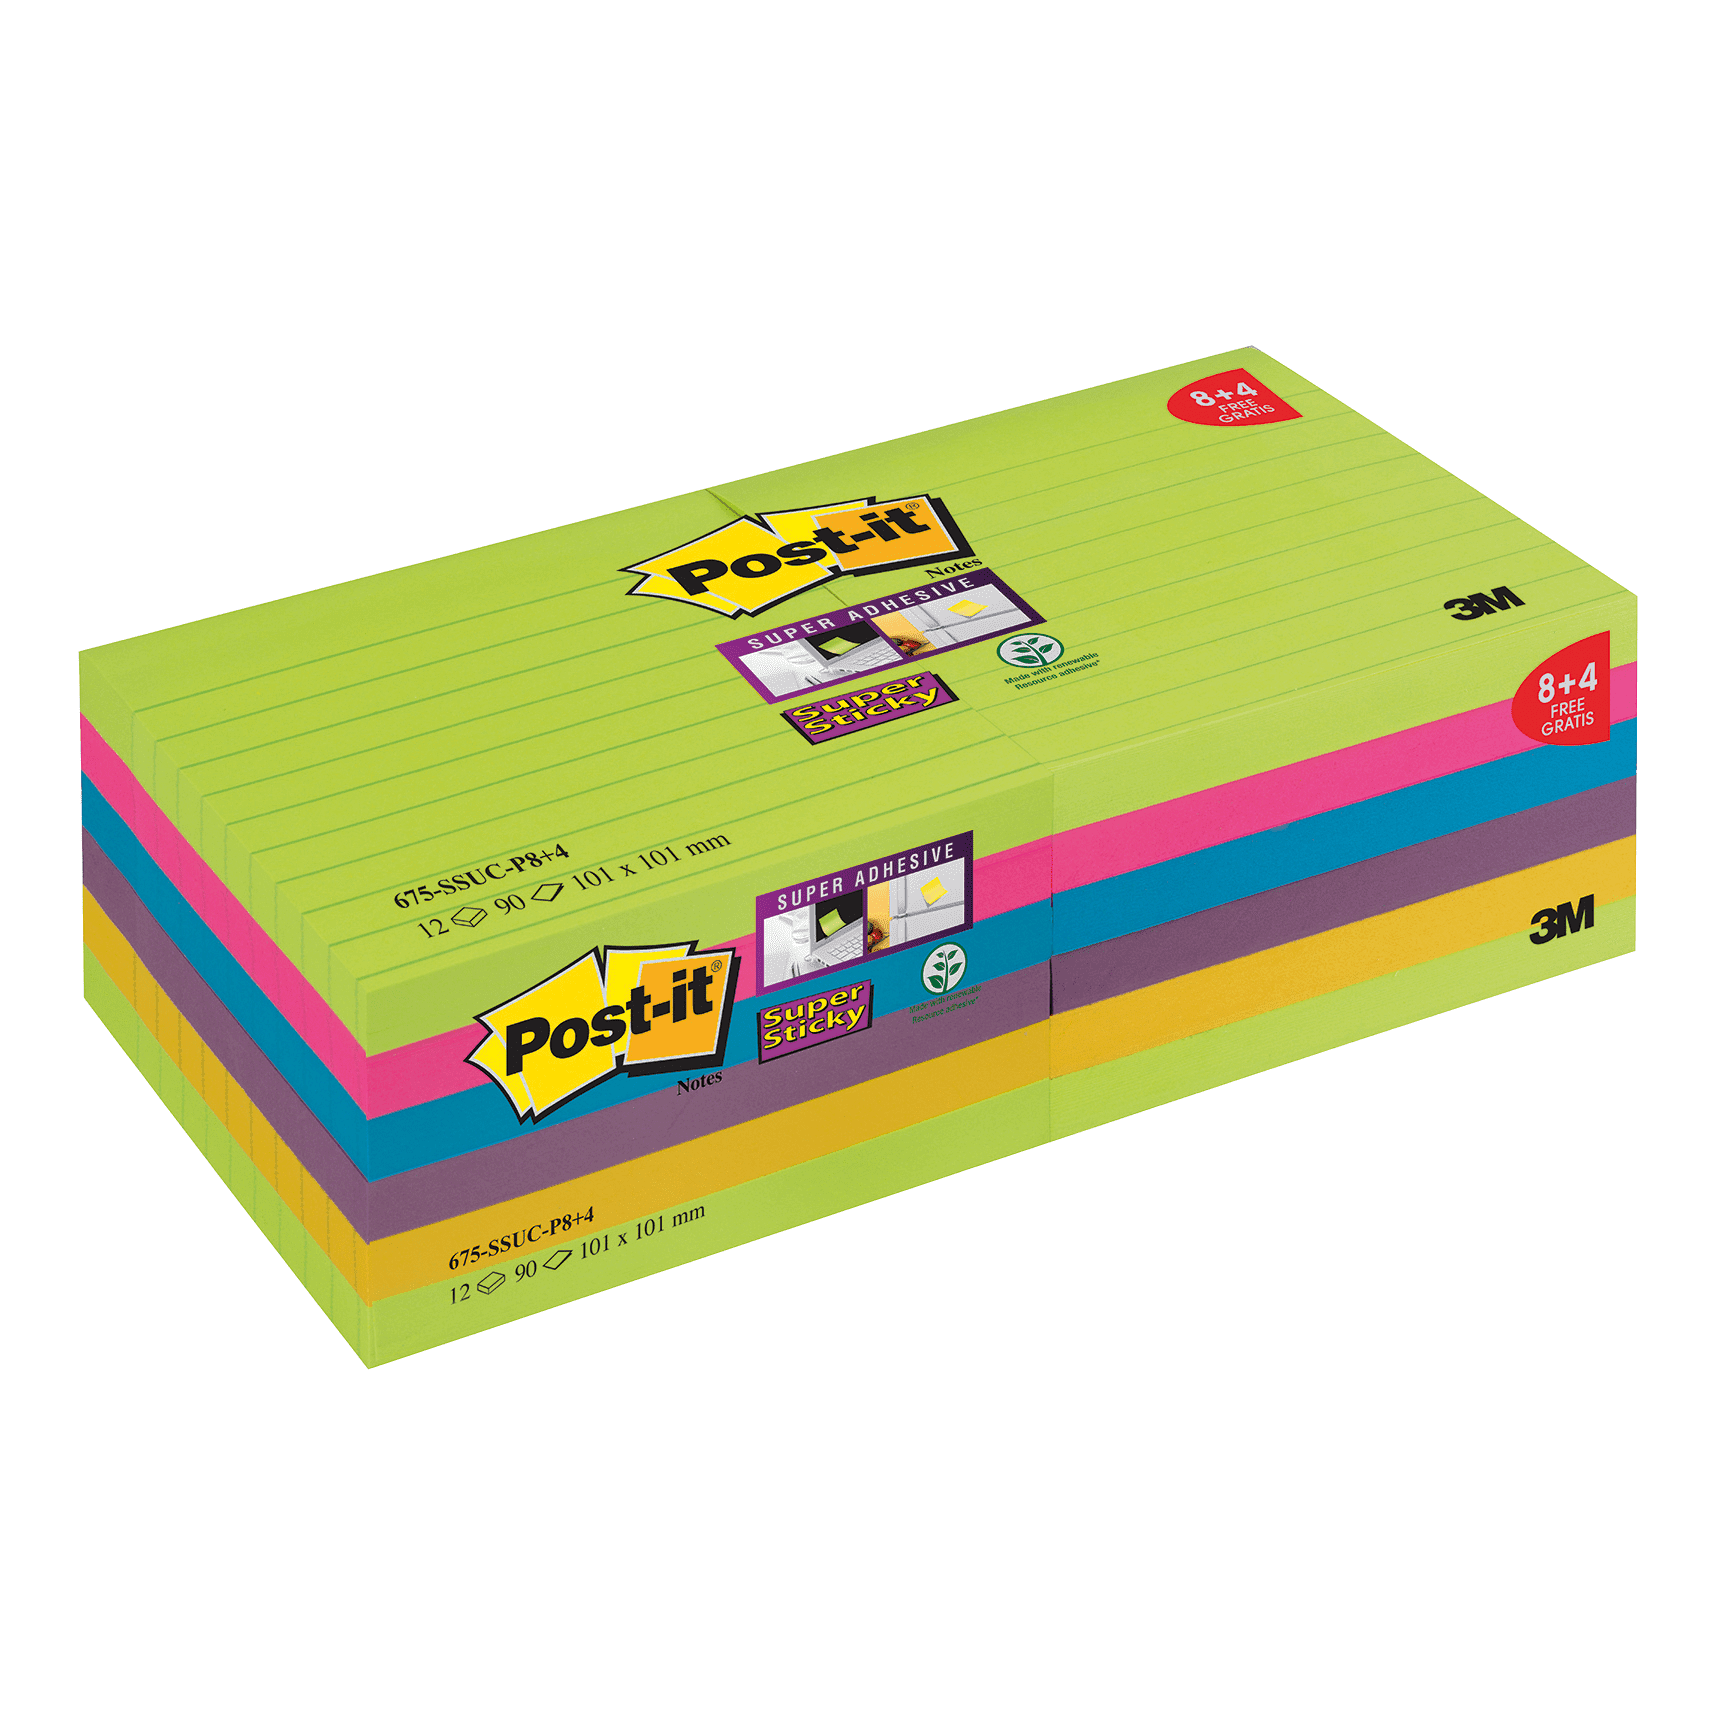 Post It SS Notes 101x101 Promo PK12